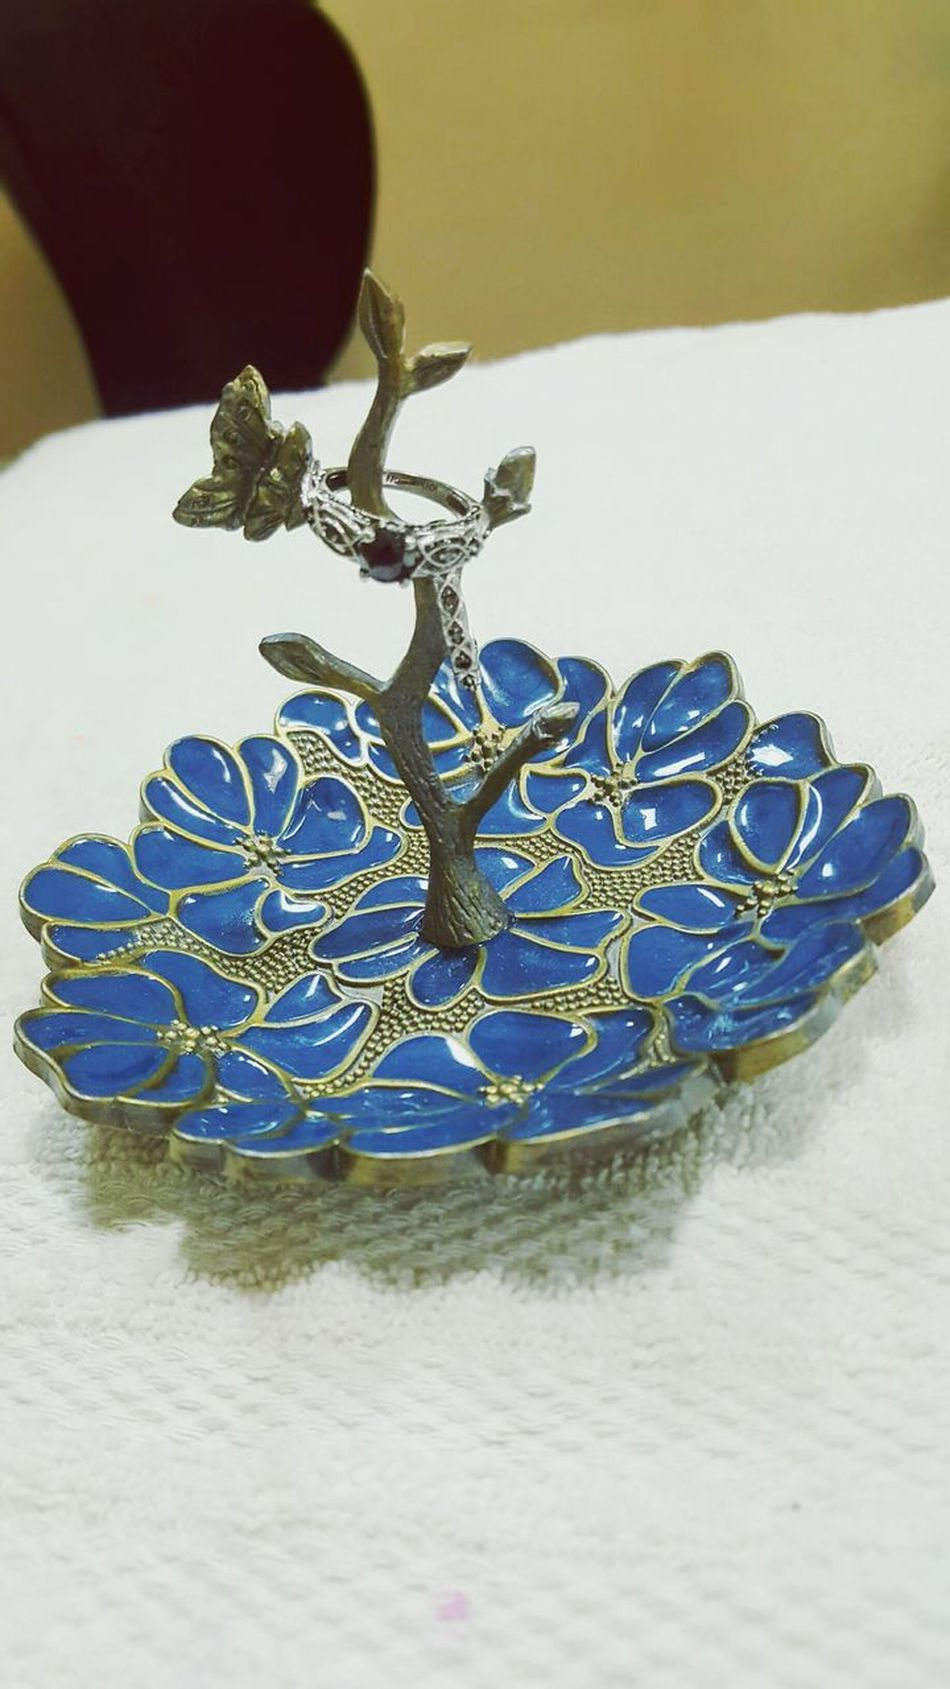 Luxury Shiny Jewelry Ring Holder Butterfly Rings No People Precious Gem Diamond Rings Flower Base Blue Blue Flowers